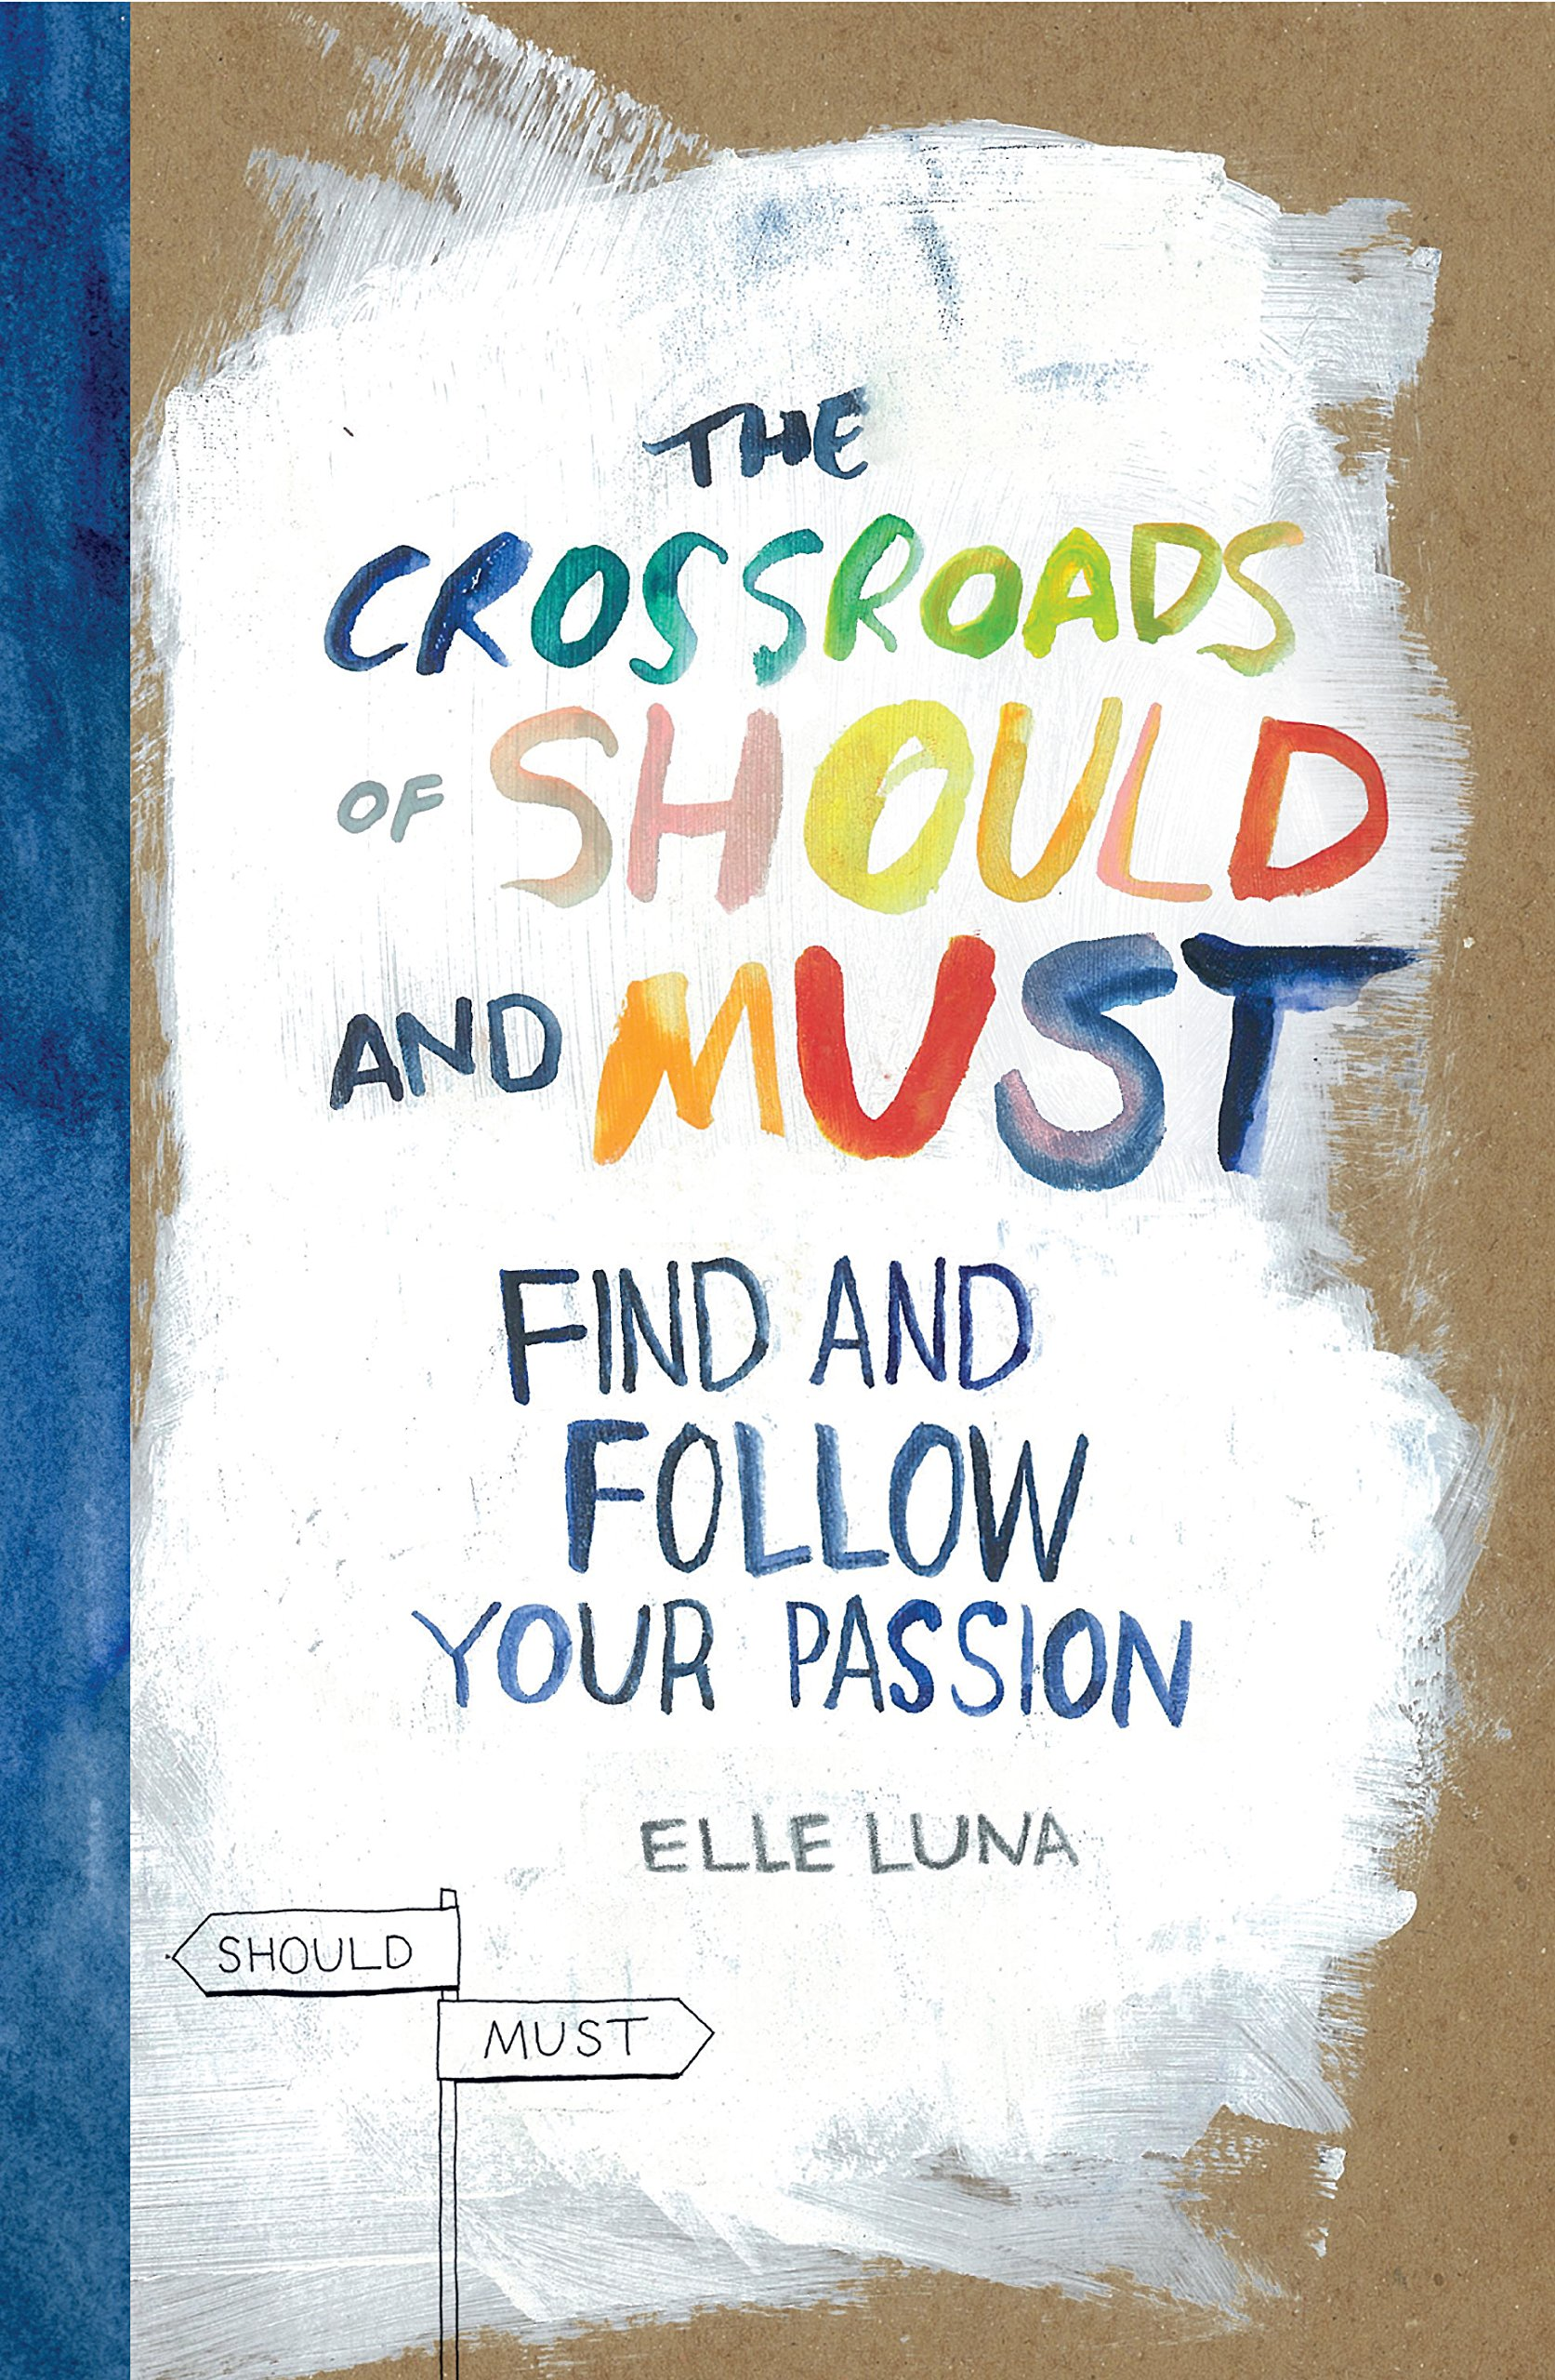 The Crossroads Of Should And Must: Find and Follow Your Passion: One of the top self-improvement books.